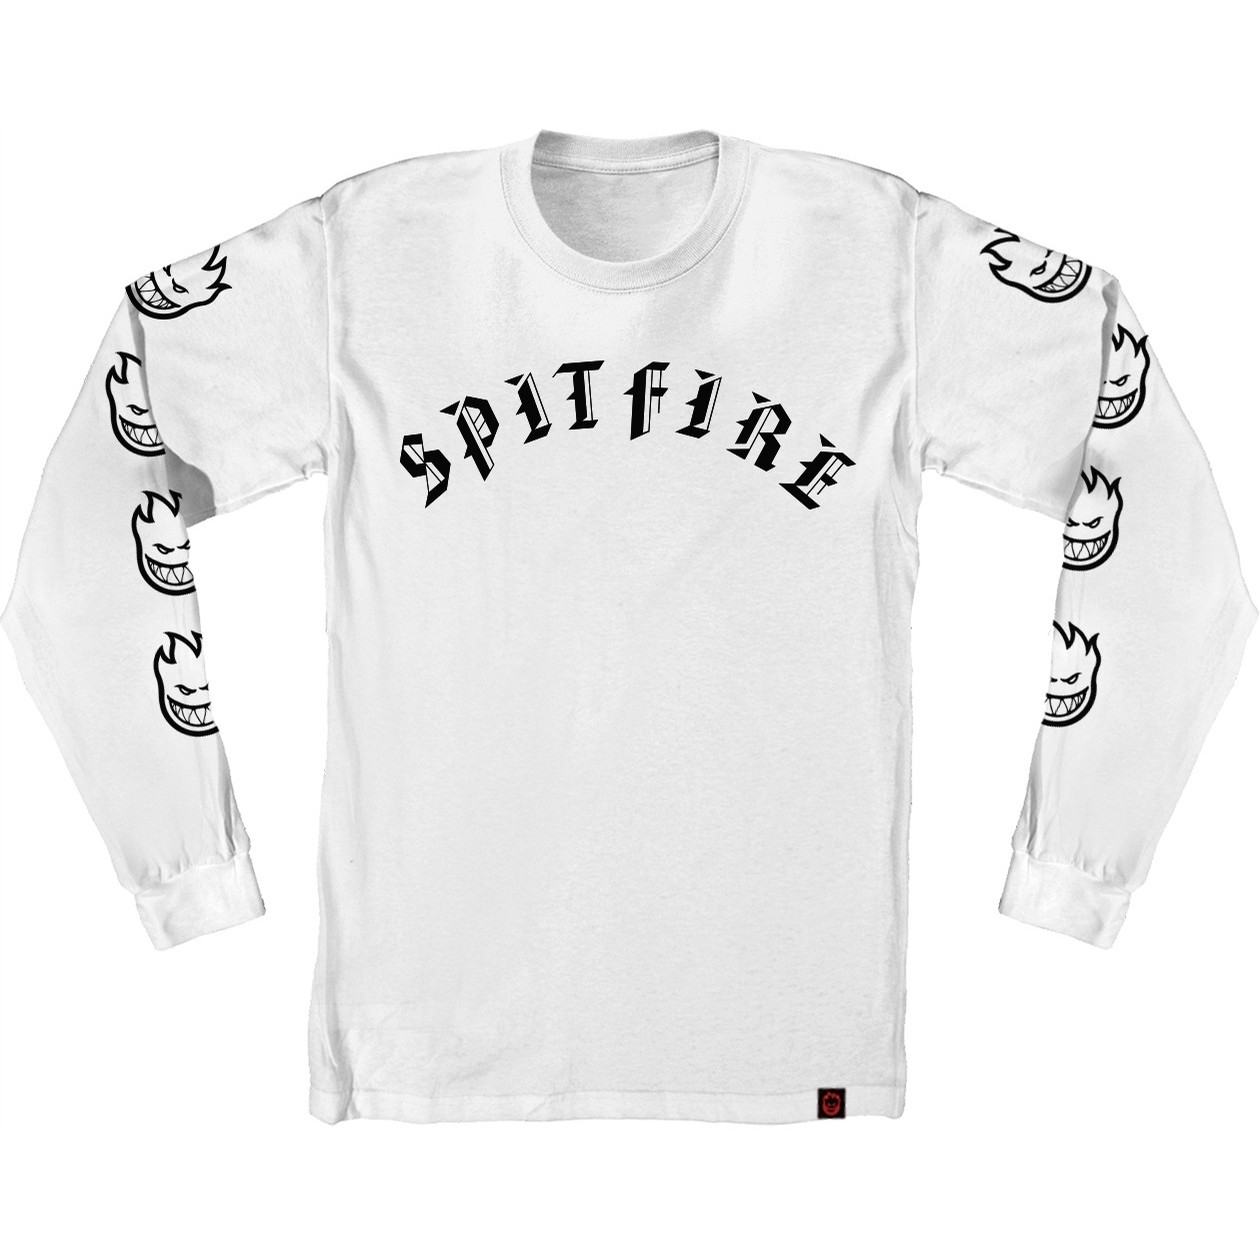 Old E L/S Tee (White/Black)